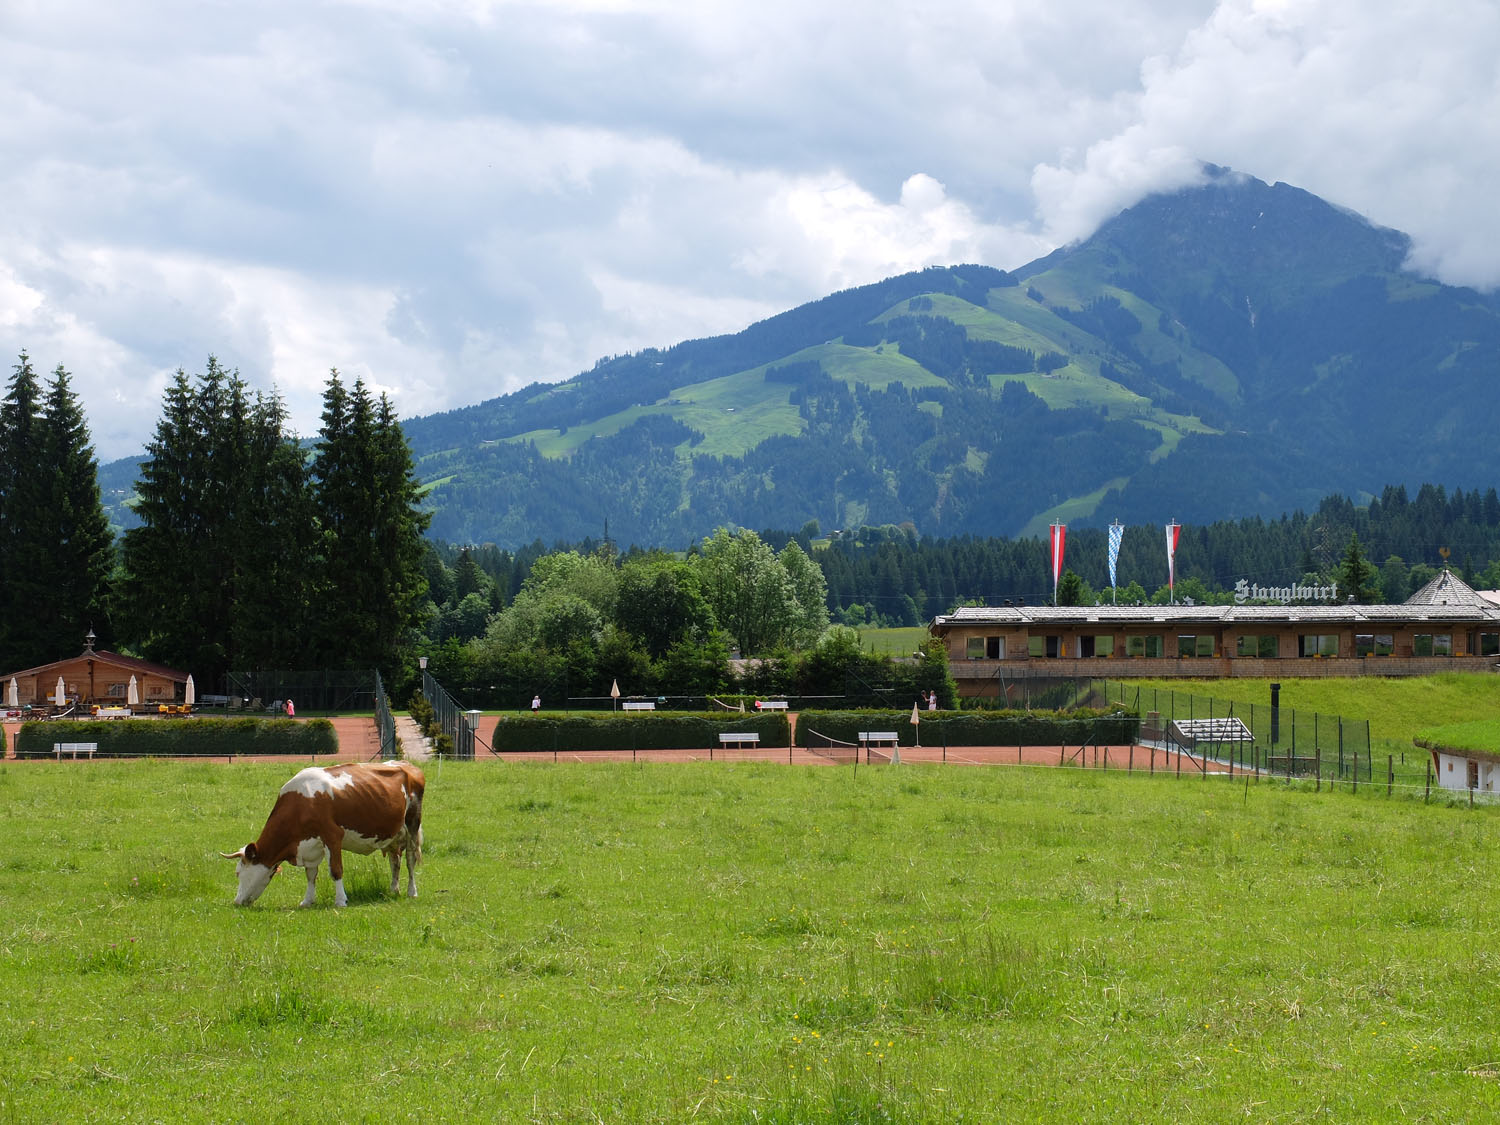 Pastures, tennis courts, and the new expansion of Stanglwirt, with the Kaiser mountains